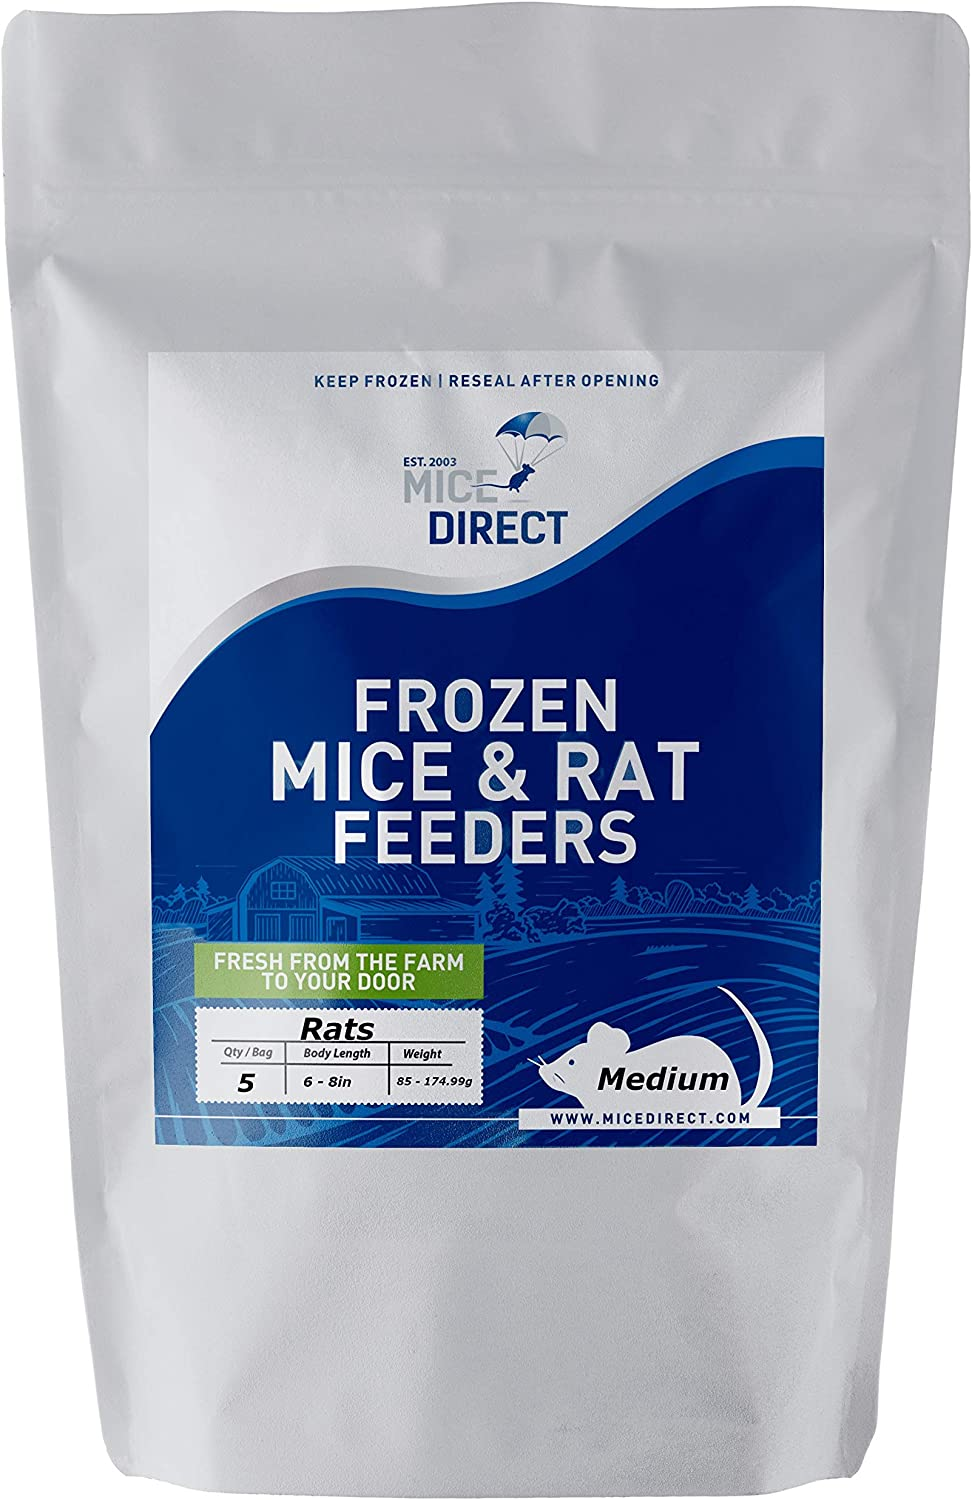 MiceDirect 5 Medium Rats: Pack of Frozen Medium Feeder Rats - Food for Corn Snakes, Ball Pythons, Lizards and Other Pet Reptiles - Freshest Snake Feed Supplies